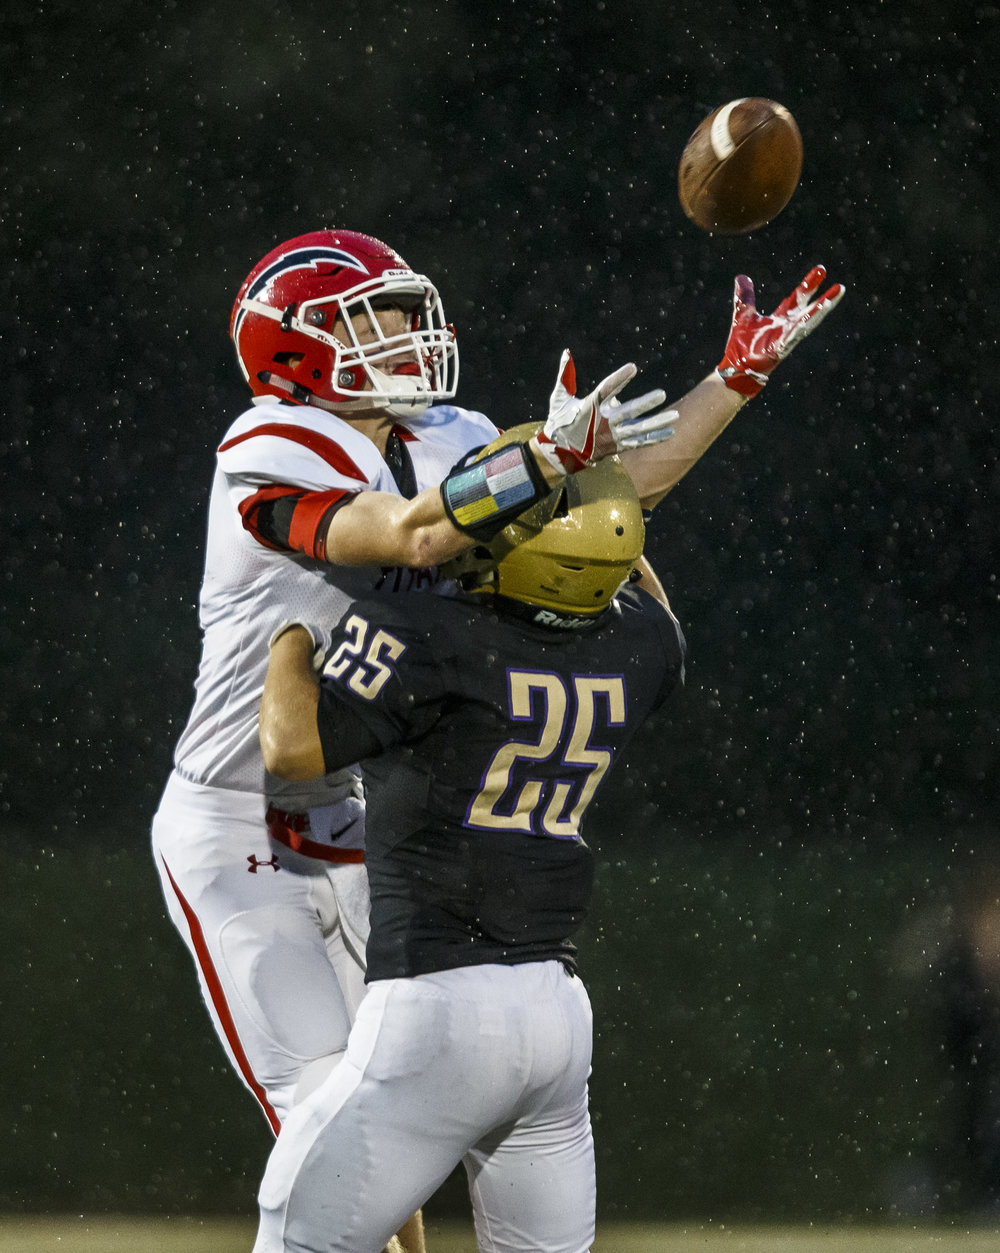 Sacred Heart-Griffin's Joey Milbrandt (25) is called for pass interference as Glenwood's Brandon Hay (8) tries to catch a pass in the first half at the SHG Sports Complex, Friday, Sept. 16, 2016, in Springfield, Ill. Justin L. Fowler/The State Journal-Register